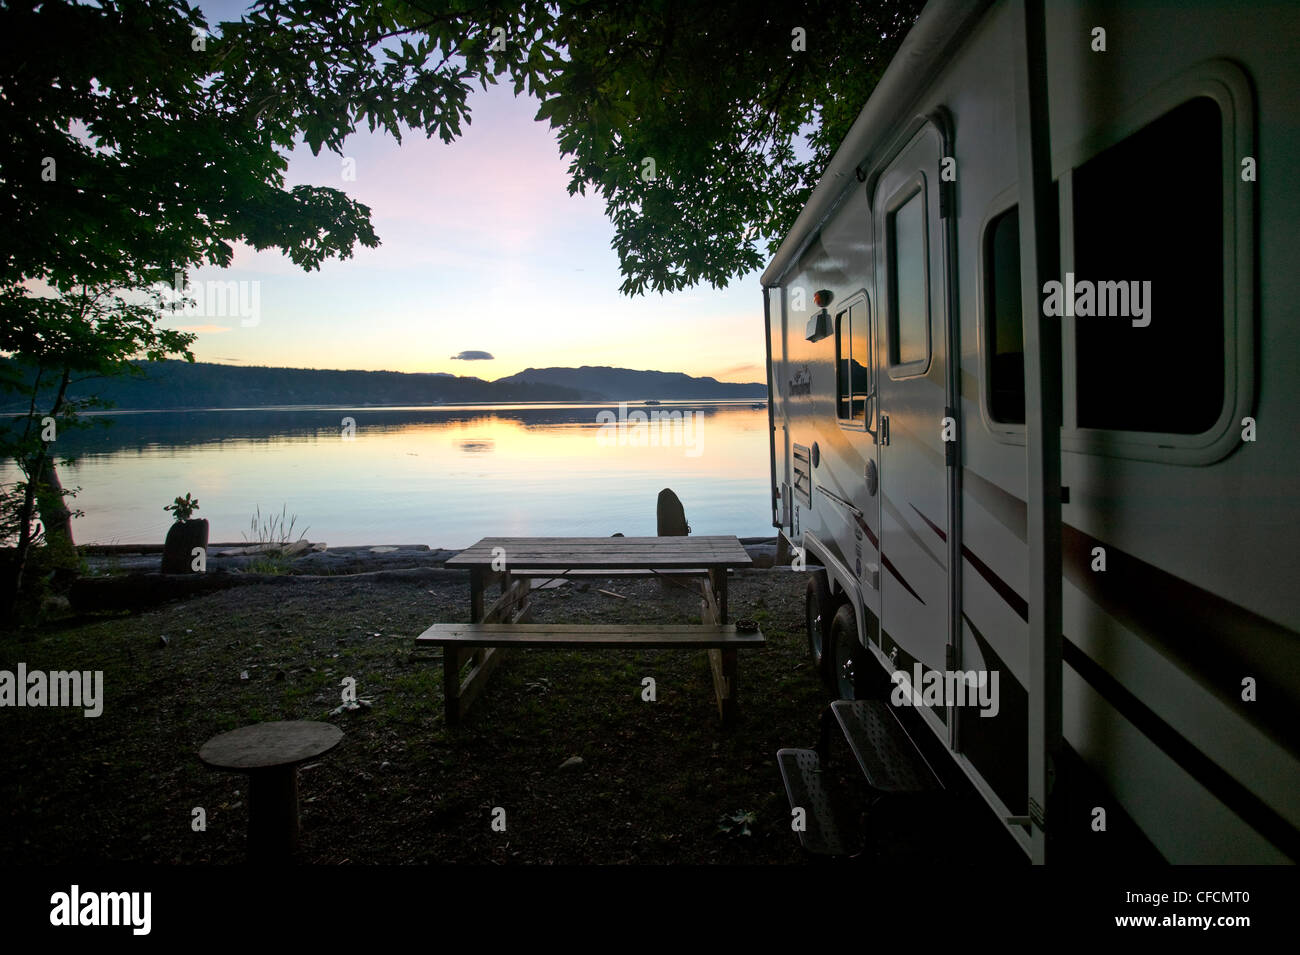 A camper at sunset reflects the last rays of light over Rebecca Spit on Quadra Island, British Columbia, Canada. - Stock Image